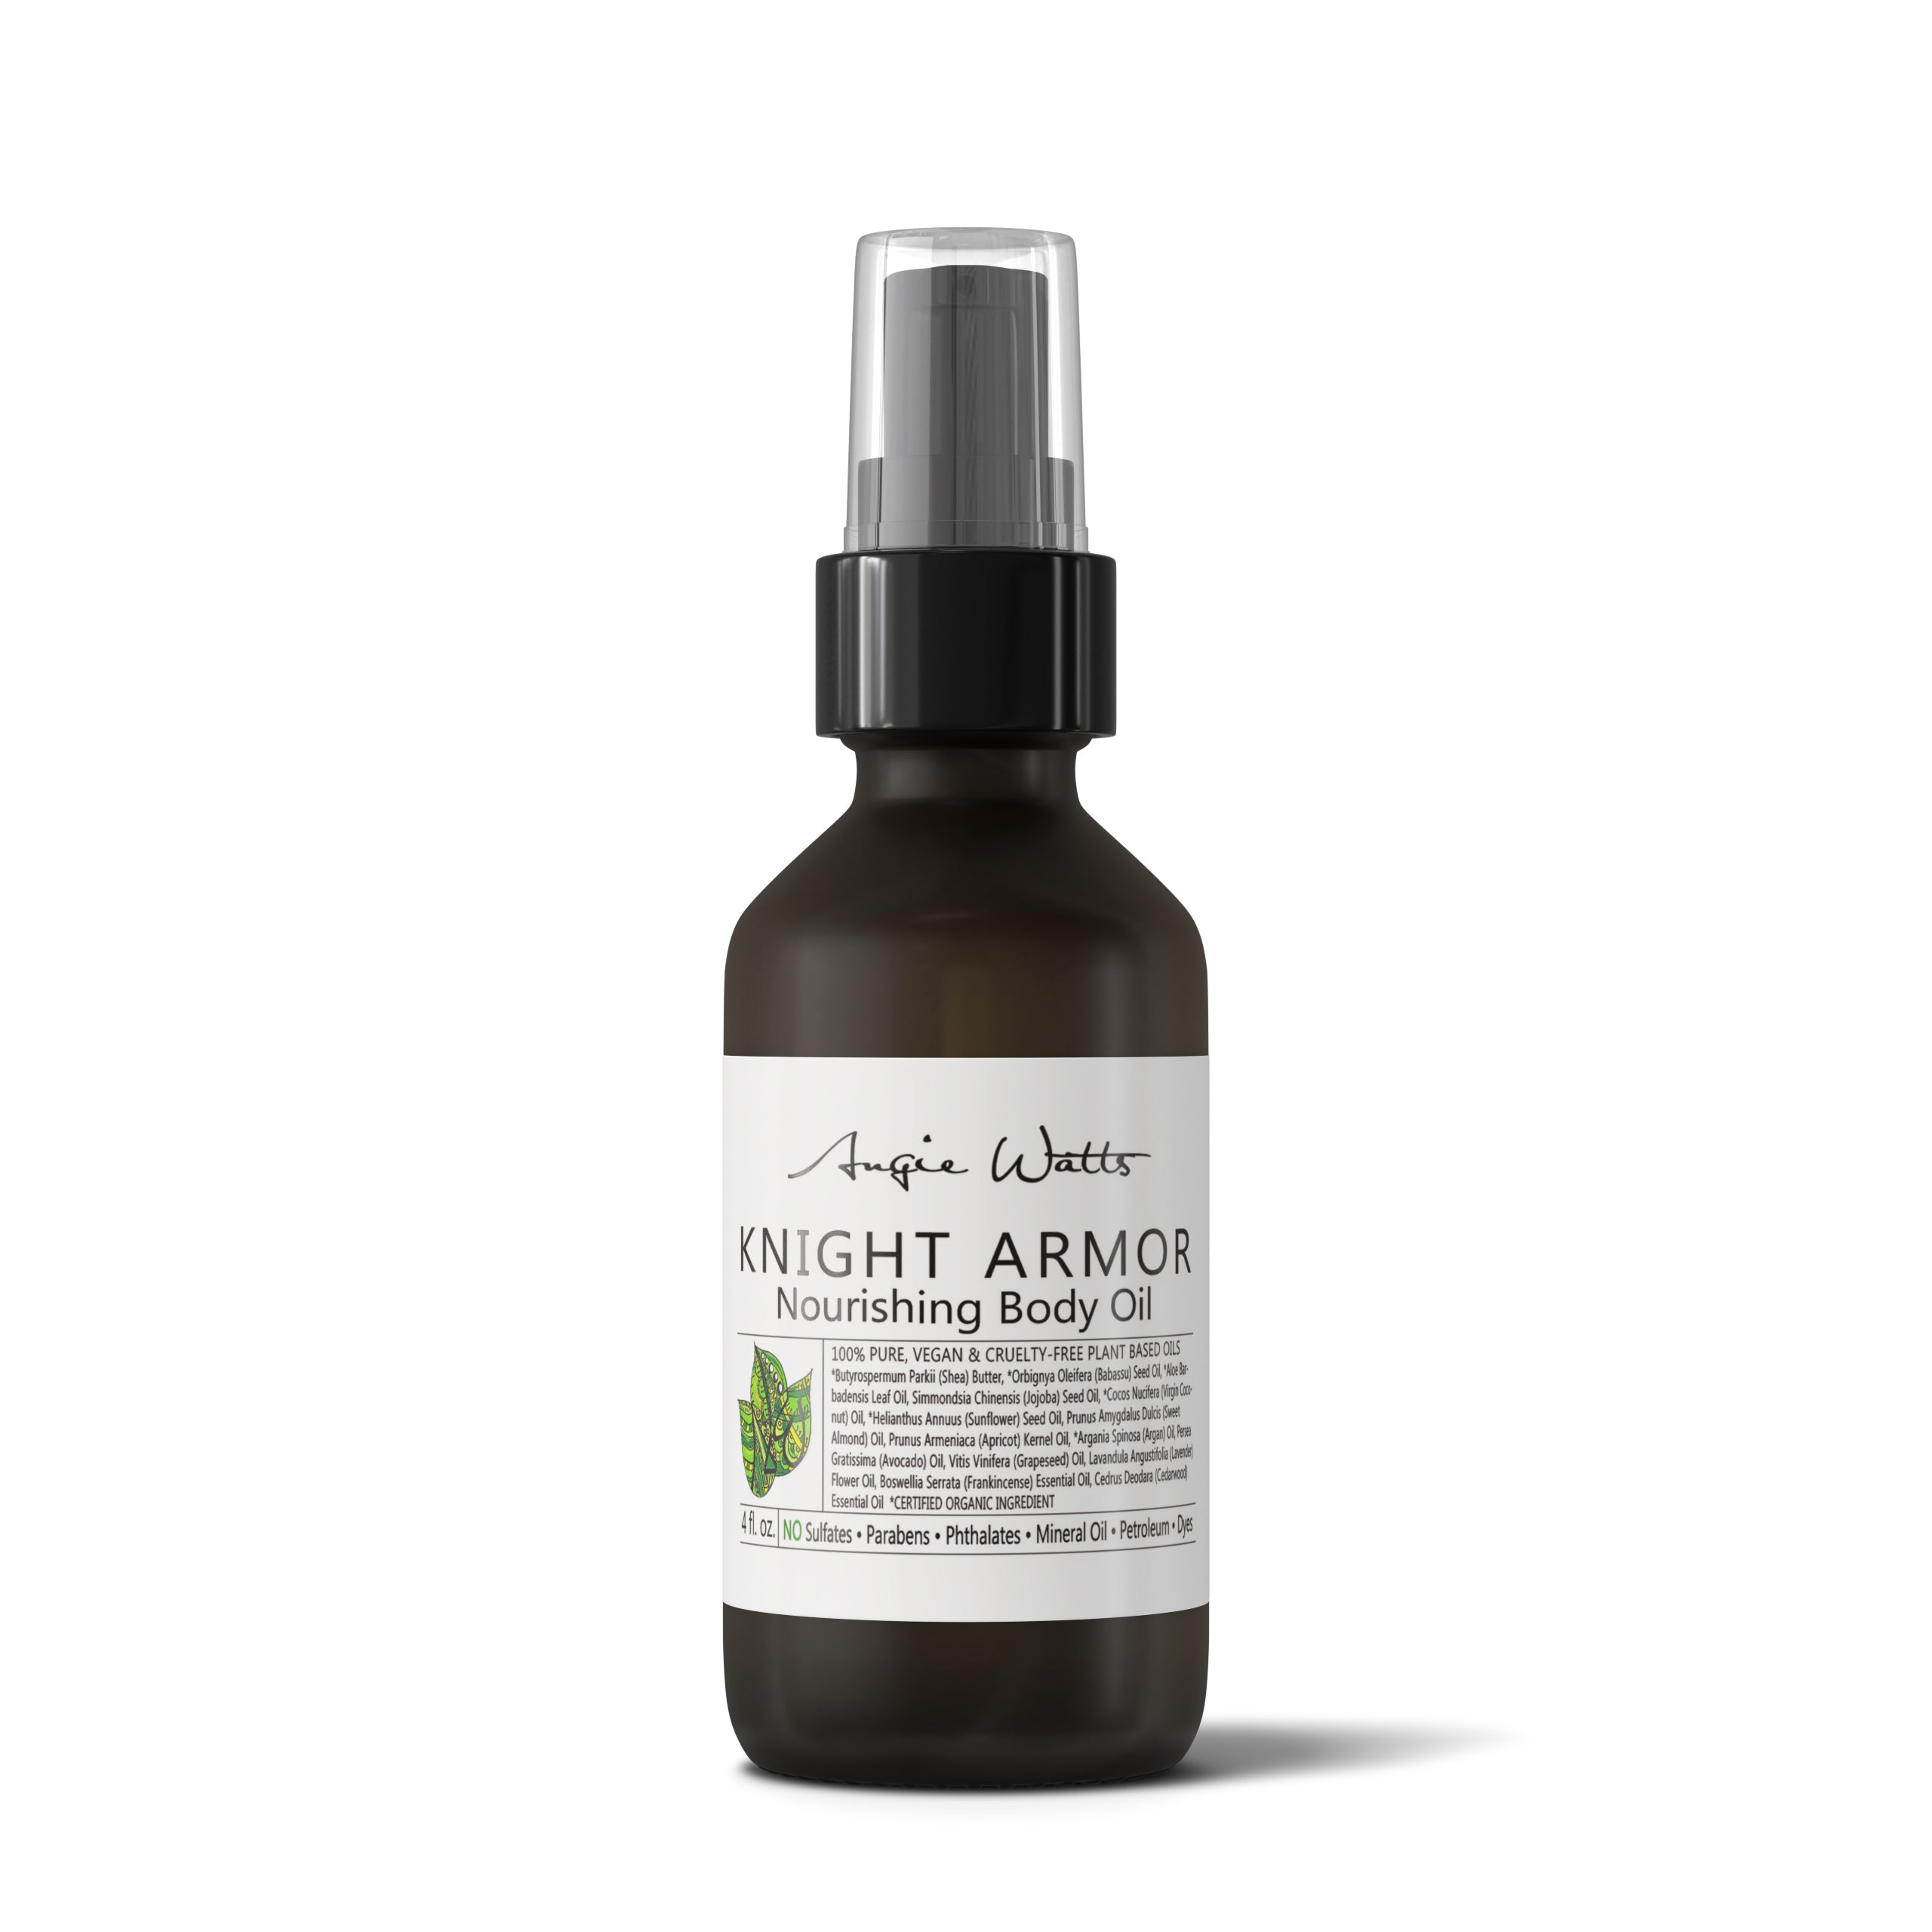 Knight Armor Nourishing Body Oil - Angie Watts